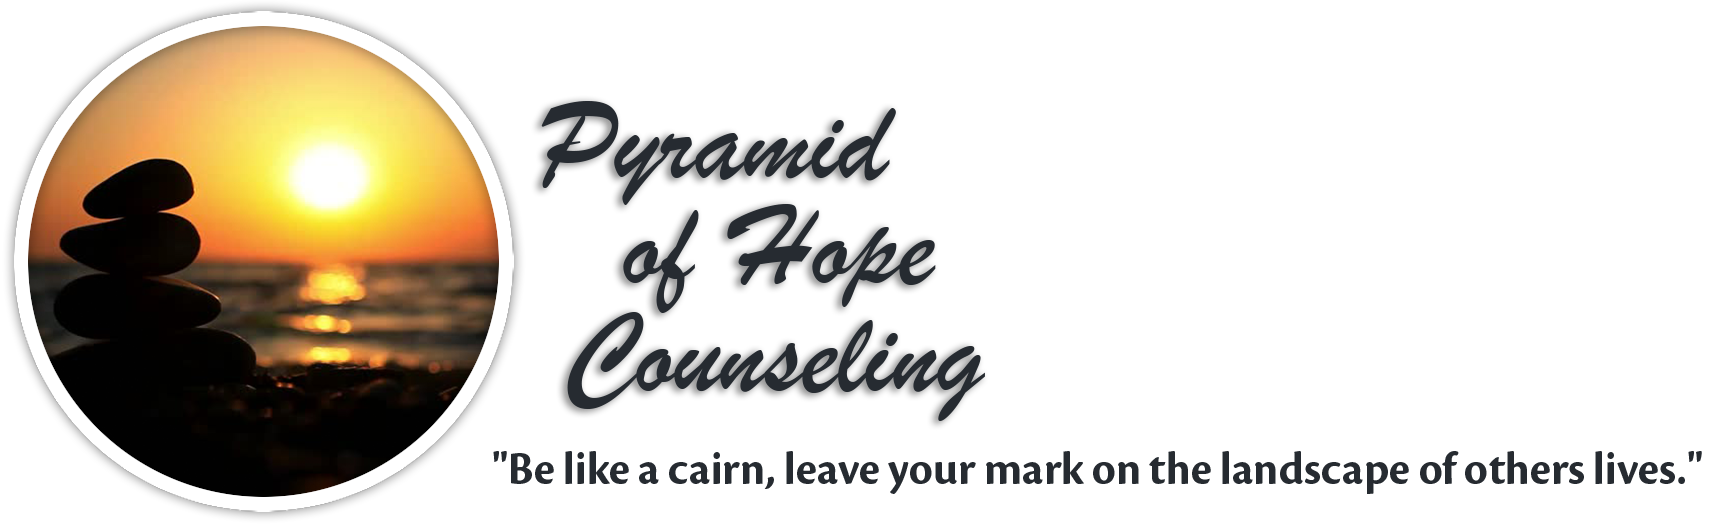 Pyramid of Hope Counseling logo